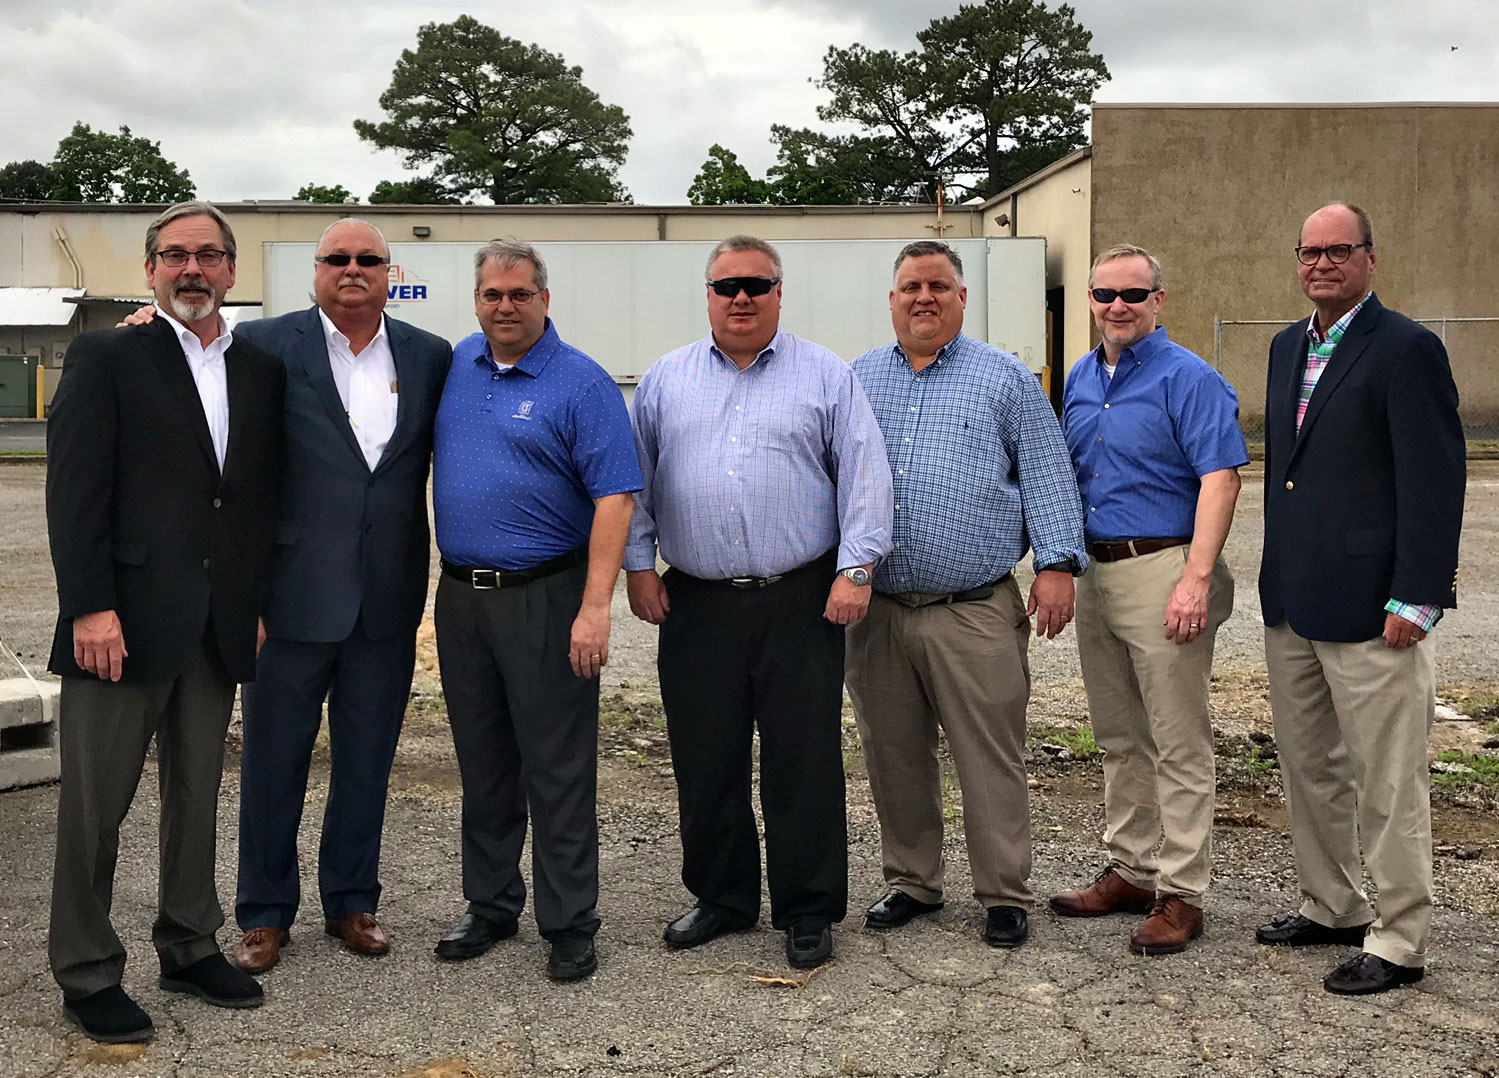 Our Company - Power Transport was founded on a mission that we still adhere to today - service, integrity, and safety above all. With more than 100 years of combined transportation management experience, the Power Transport team is prepared to handle your truckload transportation needs.